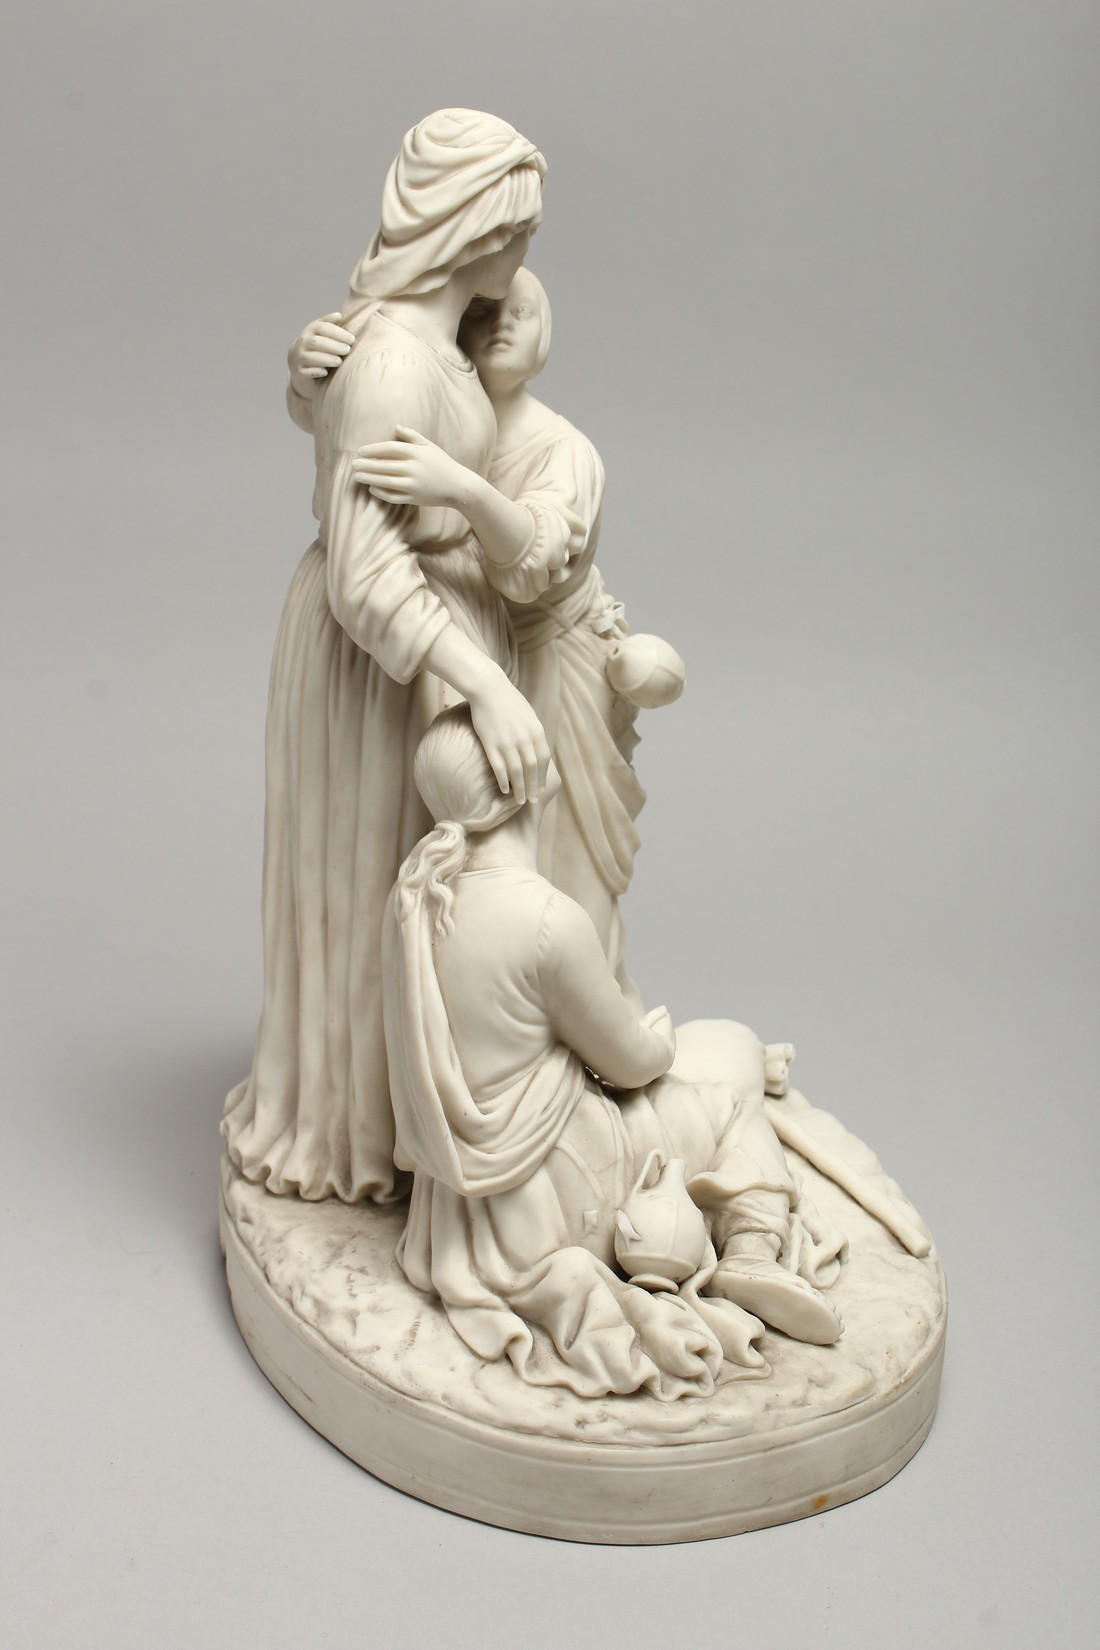 """A LATE 19TH CENTURY PARIAN WARE GROUP """"NAOMI AND HER DAUGHTER IN LAW"""". 13 ins high. - Image 5 of 8"""